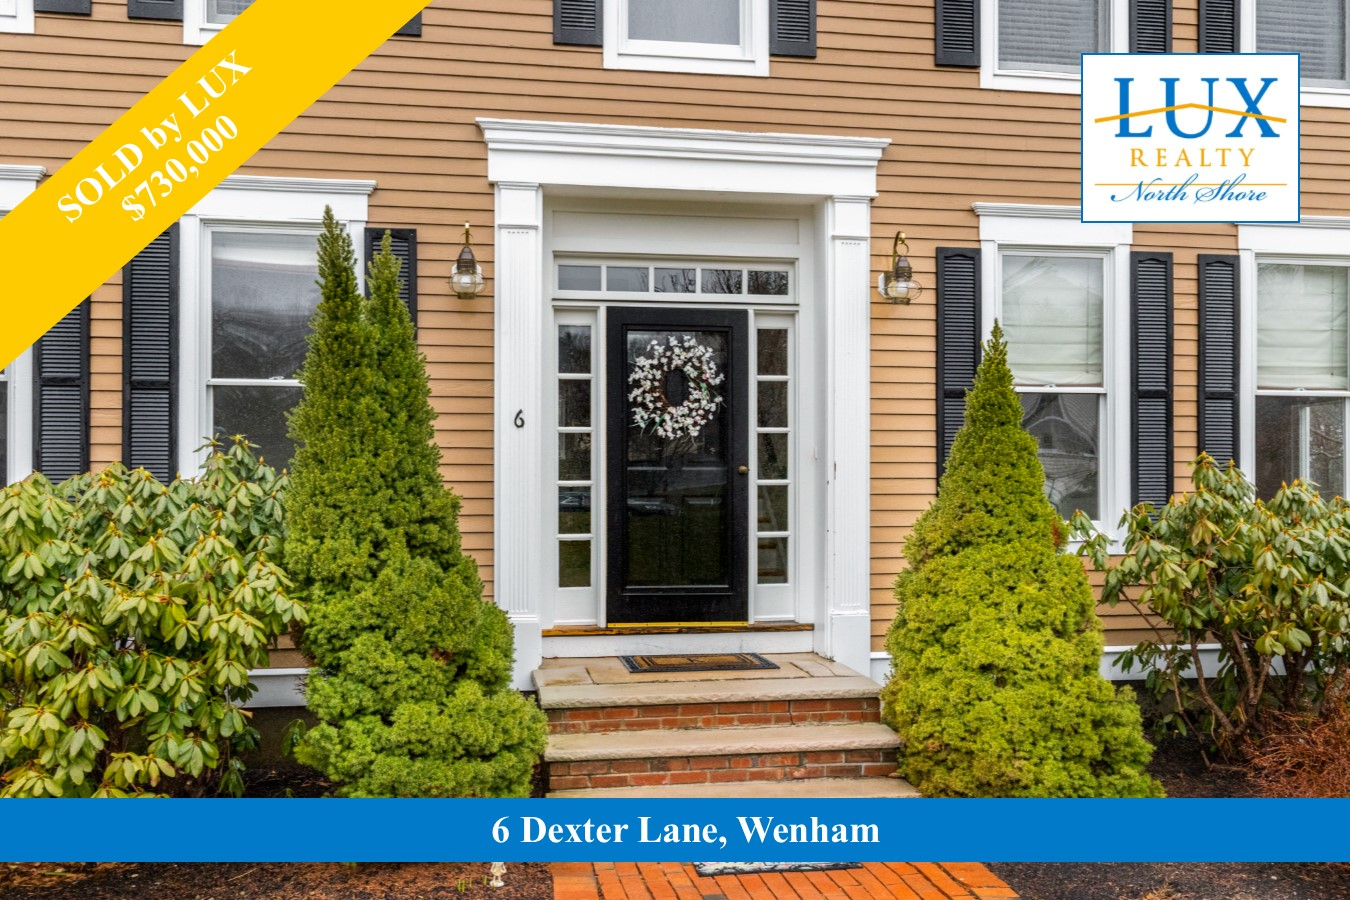 Wenham Homes for Sale